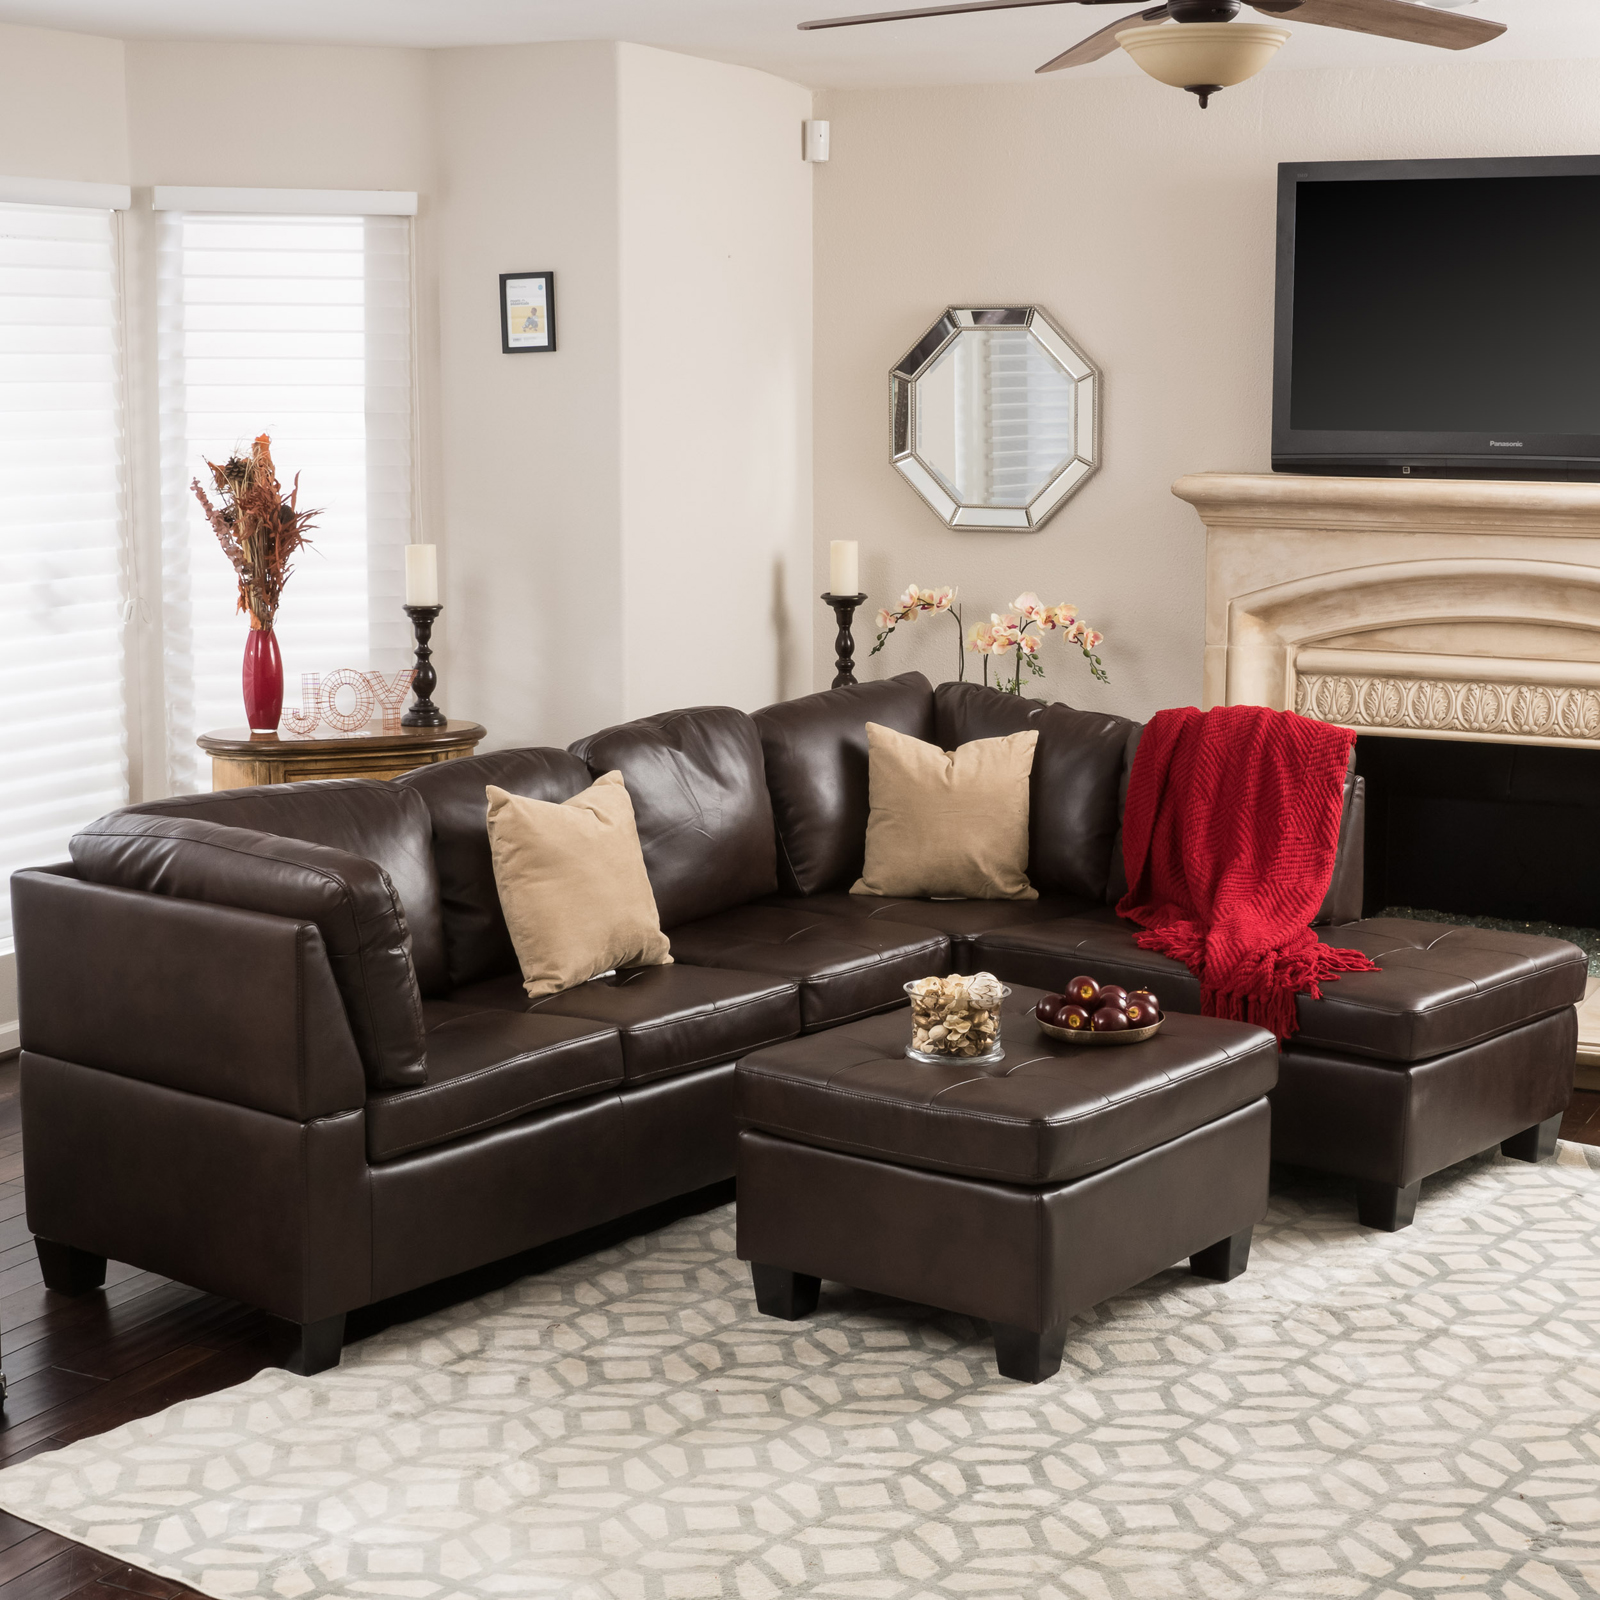 Best Selling Home Evan 3 Piece Leather Sectional Sofa